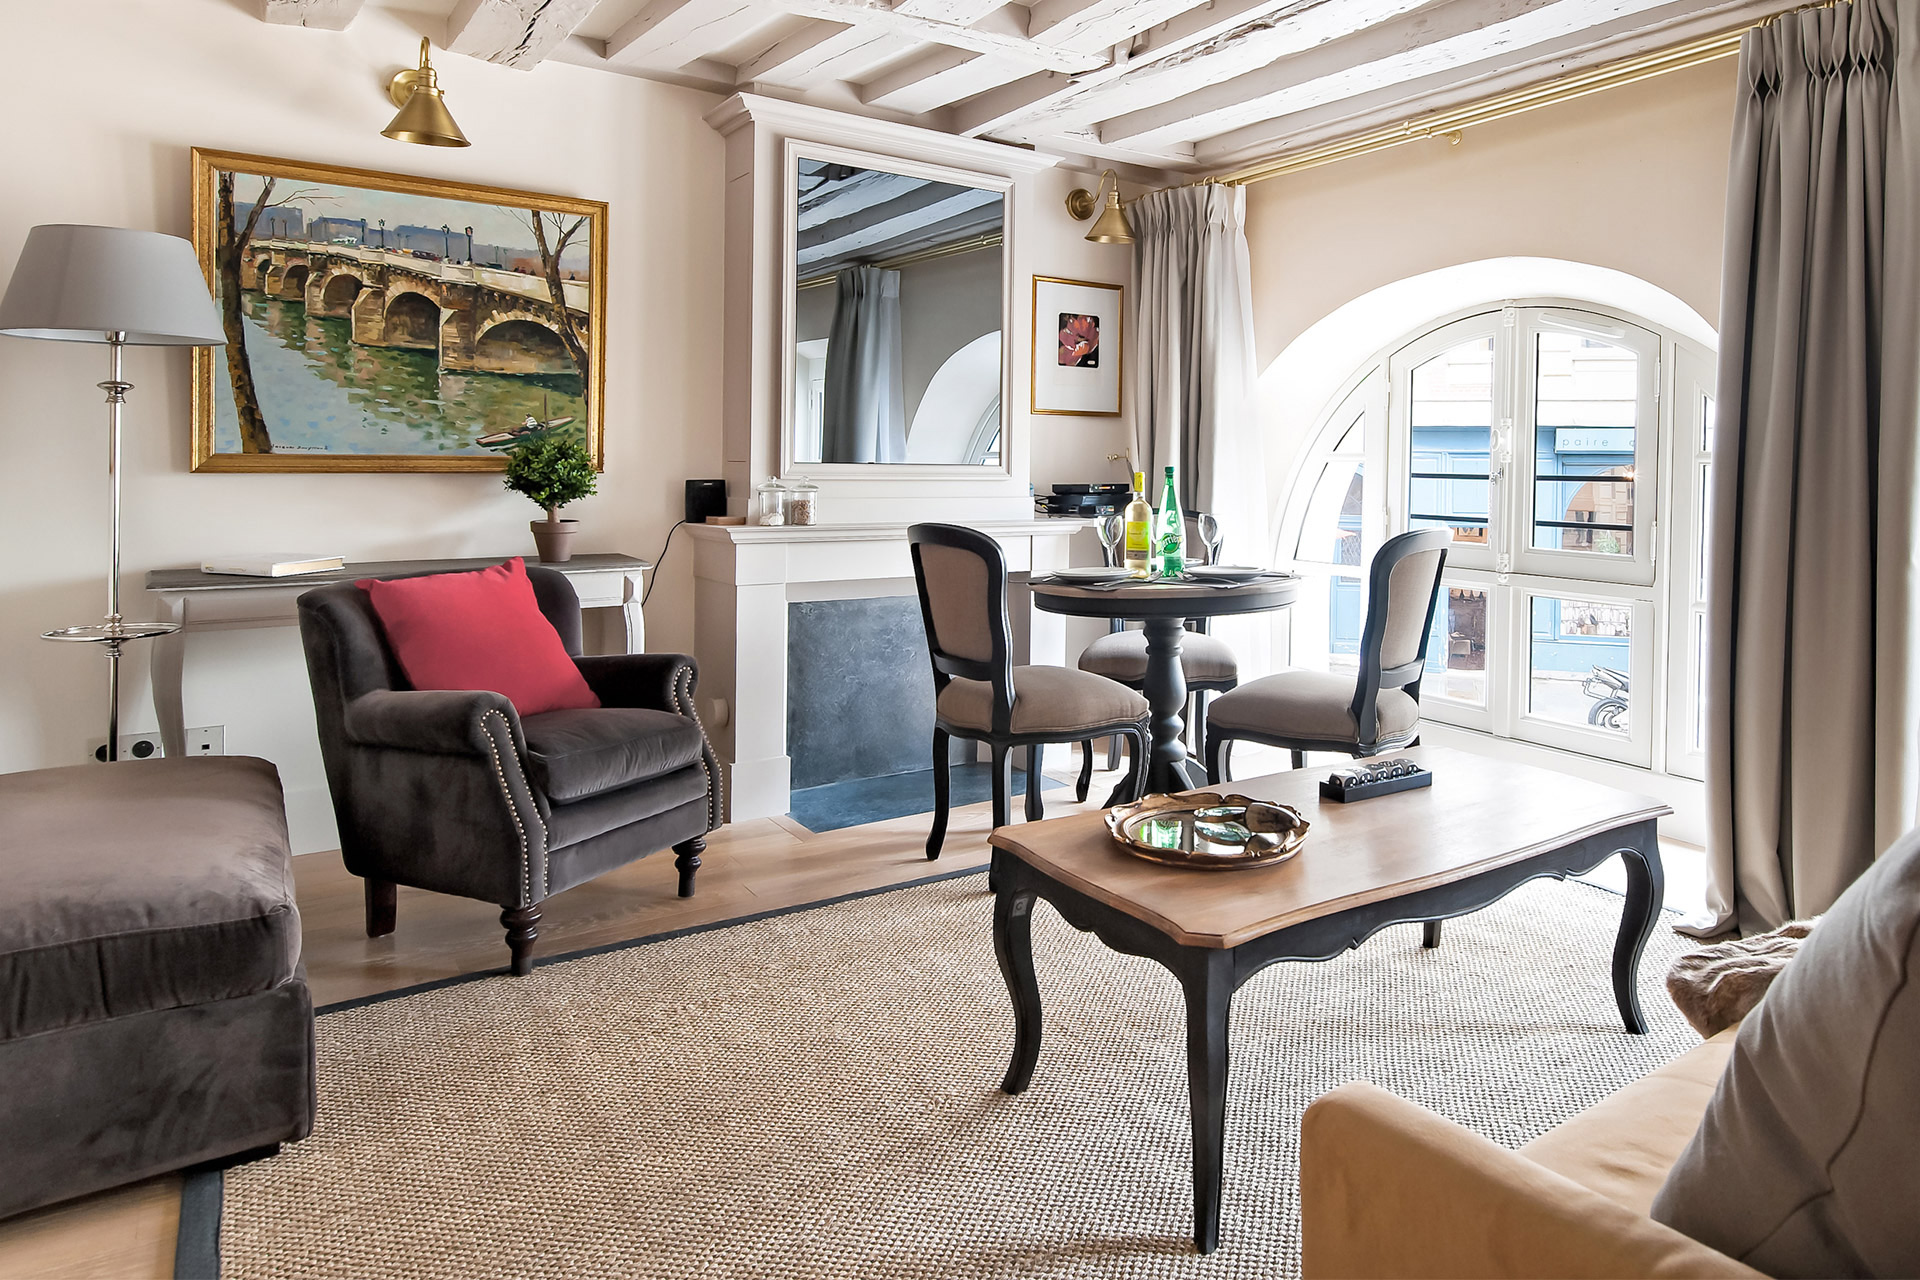 Ceiling beams give this place a historic essence in the Anjou vacation rental offered by Paris Perfect